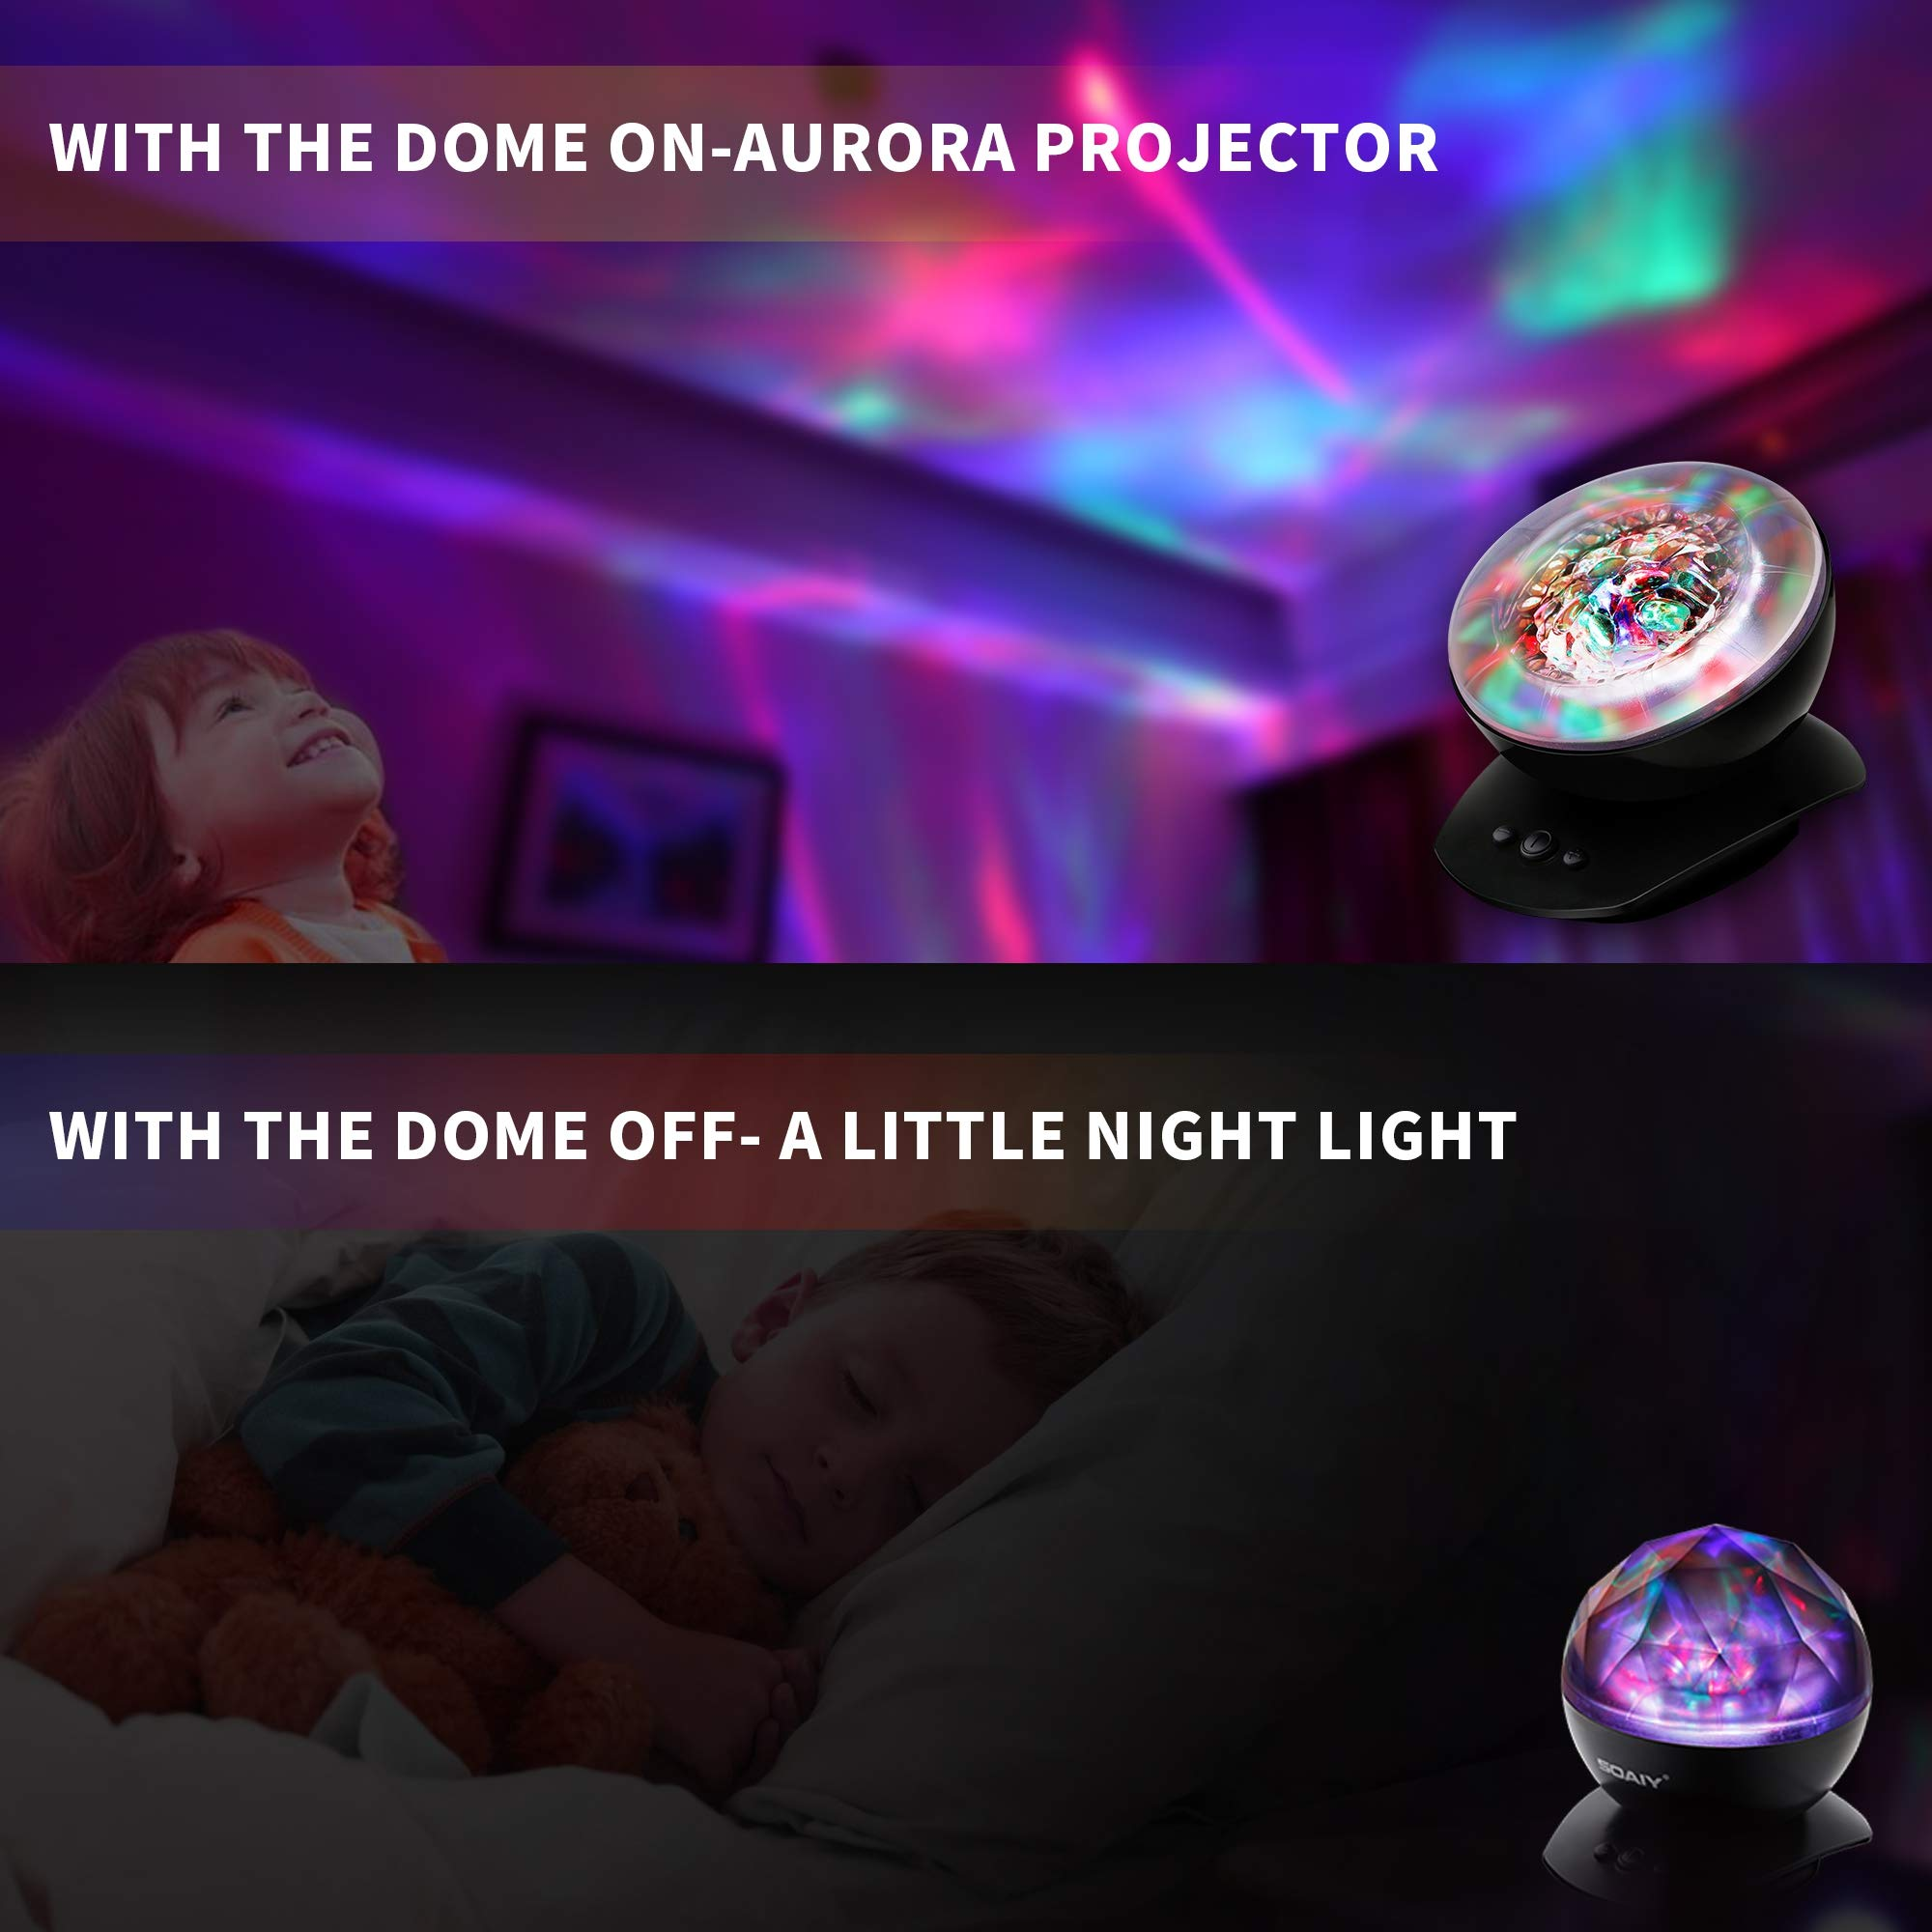 [Upgraded Version] SOAIY Soothing Aurora LED Night Light Projector with UL Certified Adapter,Timer,Remote,Music Speaker,8 Lighting Modes,Relaxing Light Show,Mood Lamp for Baby Kids, Adults,Living Room by SOAIY (Image #5)